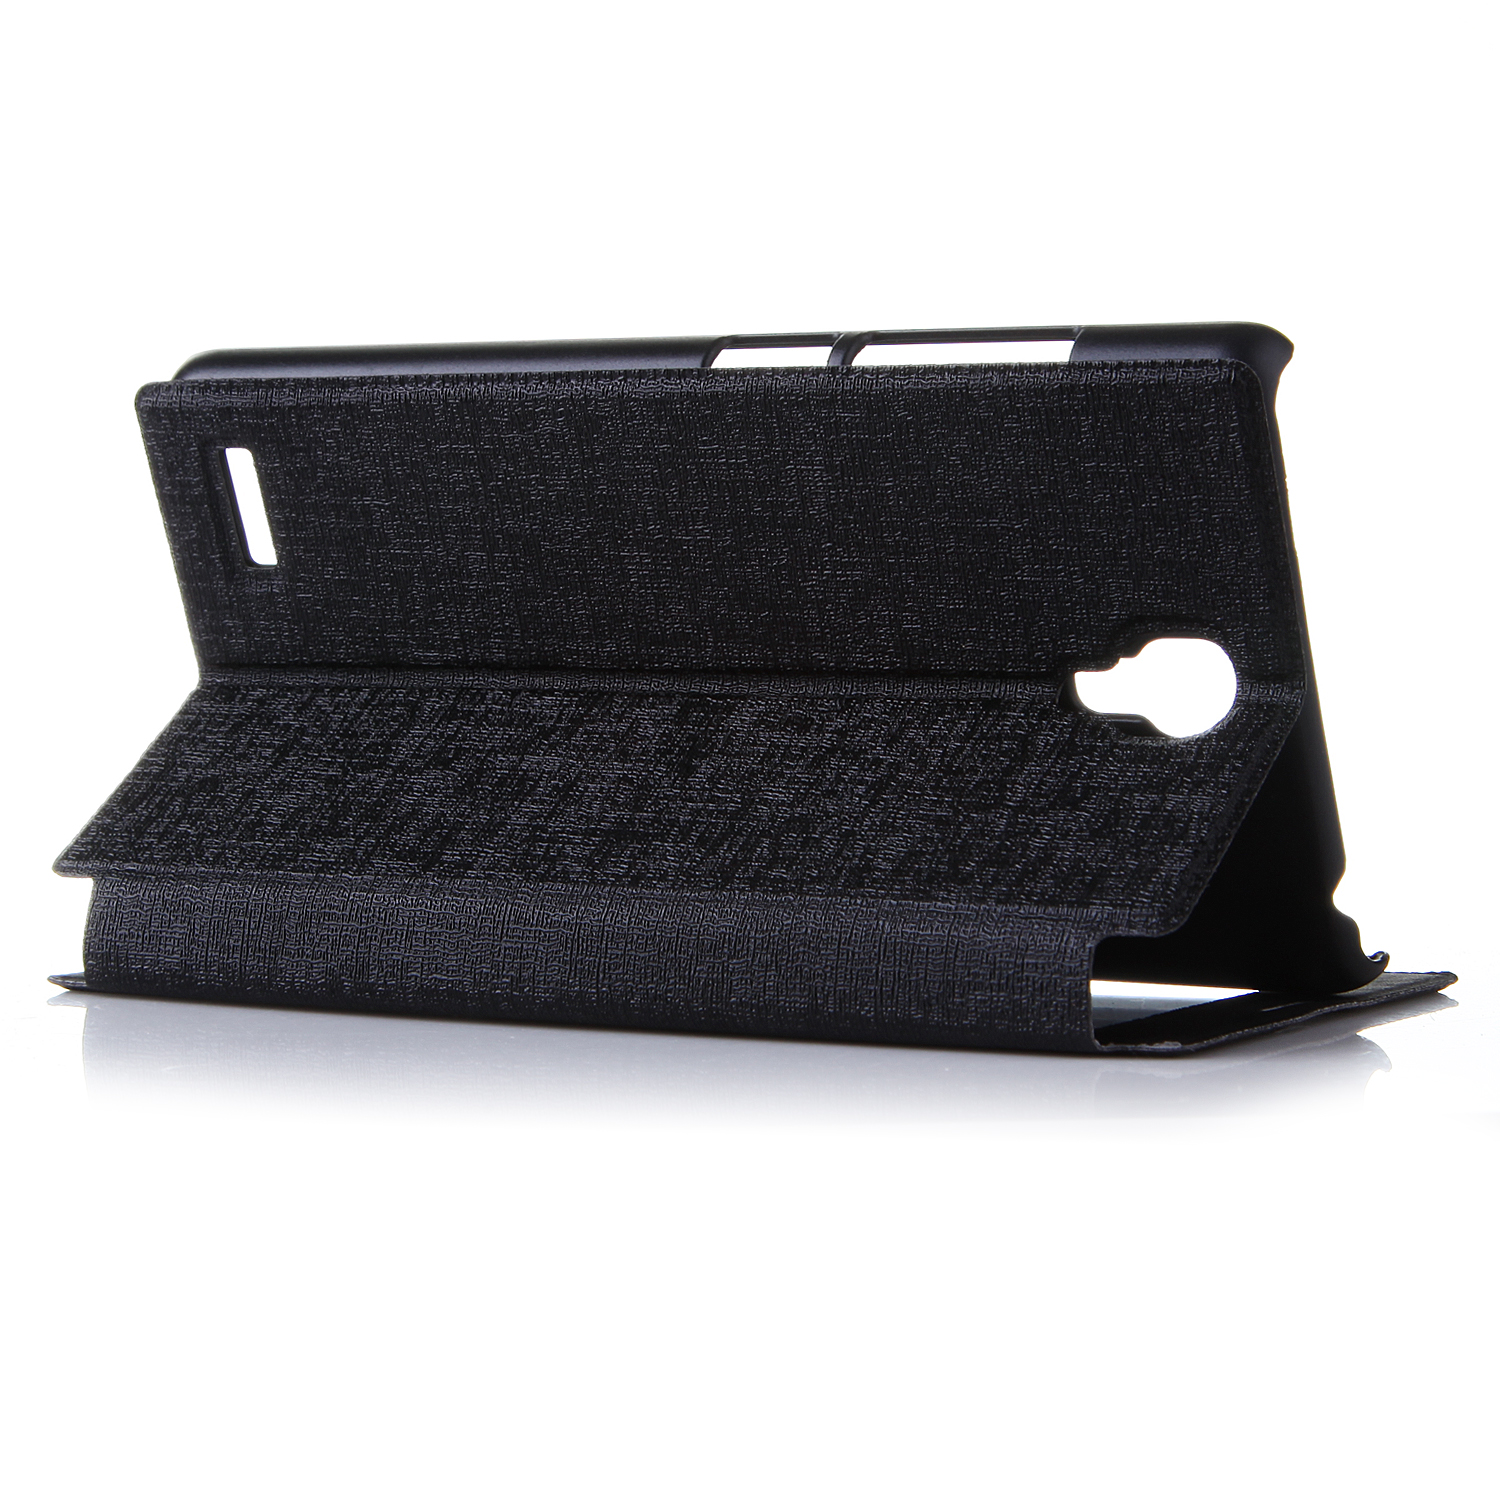 Leather Flip Cover Case Stand Case for XIAOMI Redmi Note Smartphone Black